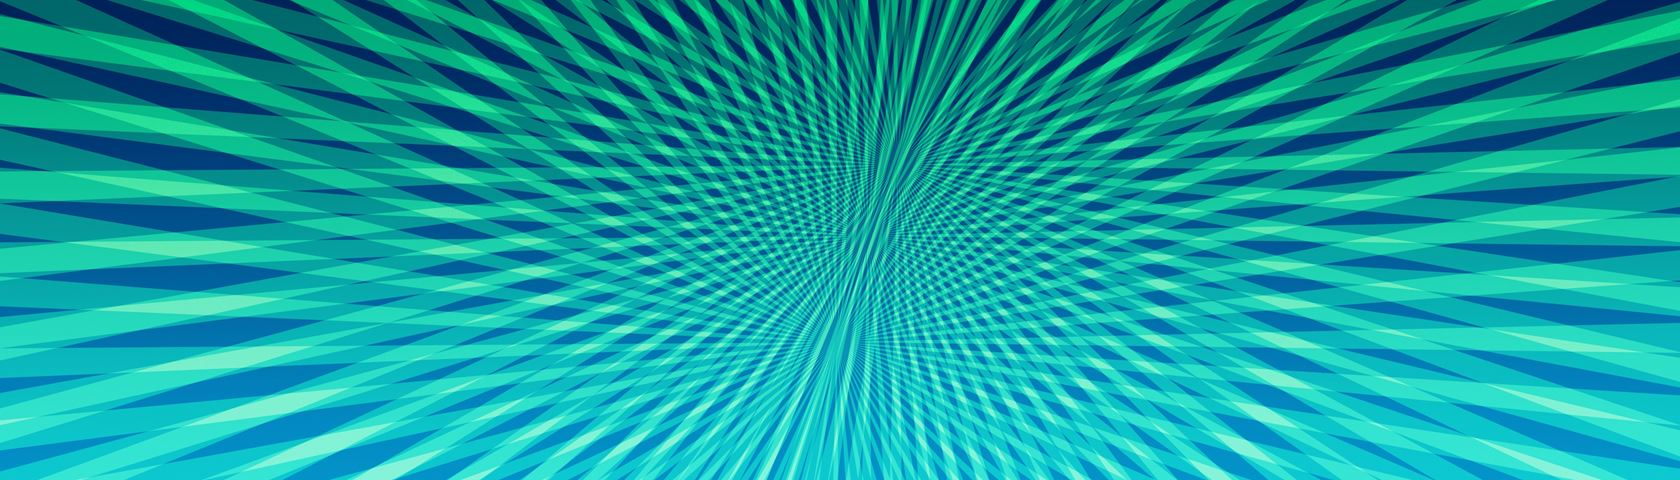 Ray Wave